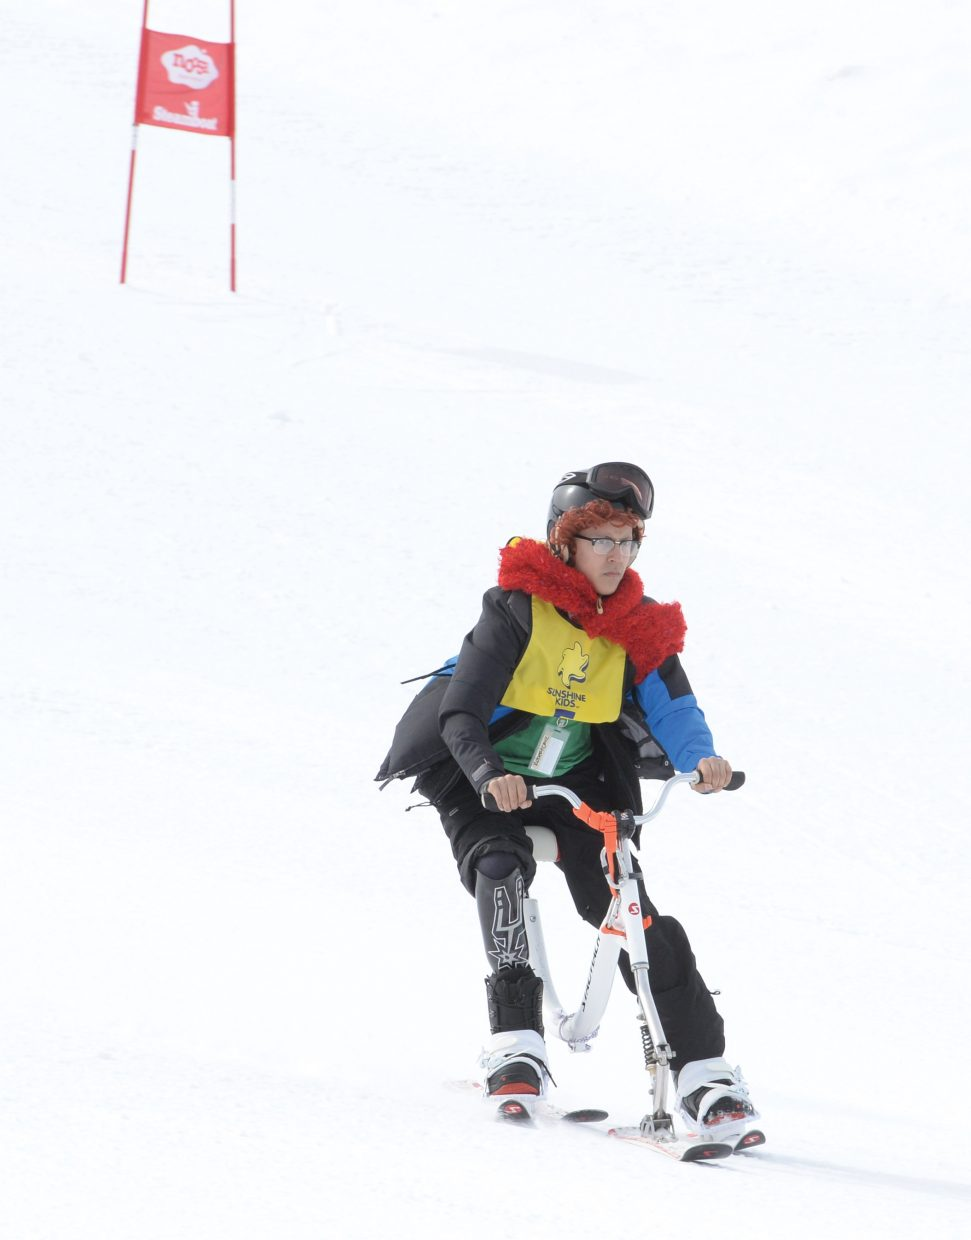 Sunshine Kid Robert Cryz from Laredo, Texas, rides a ski bike down the face of the Bashor ski run Friday afternoon.